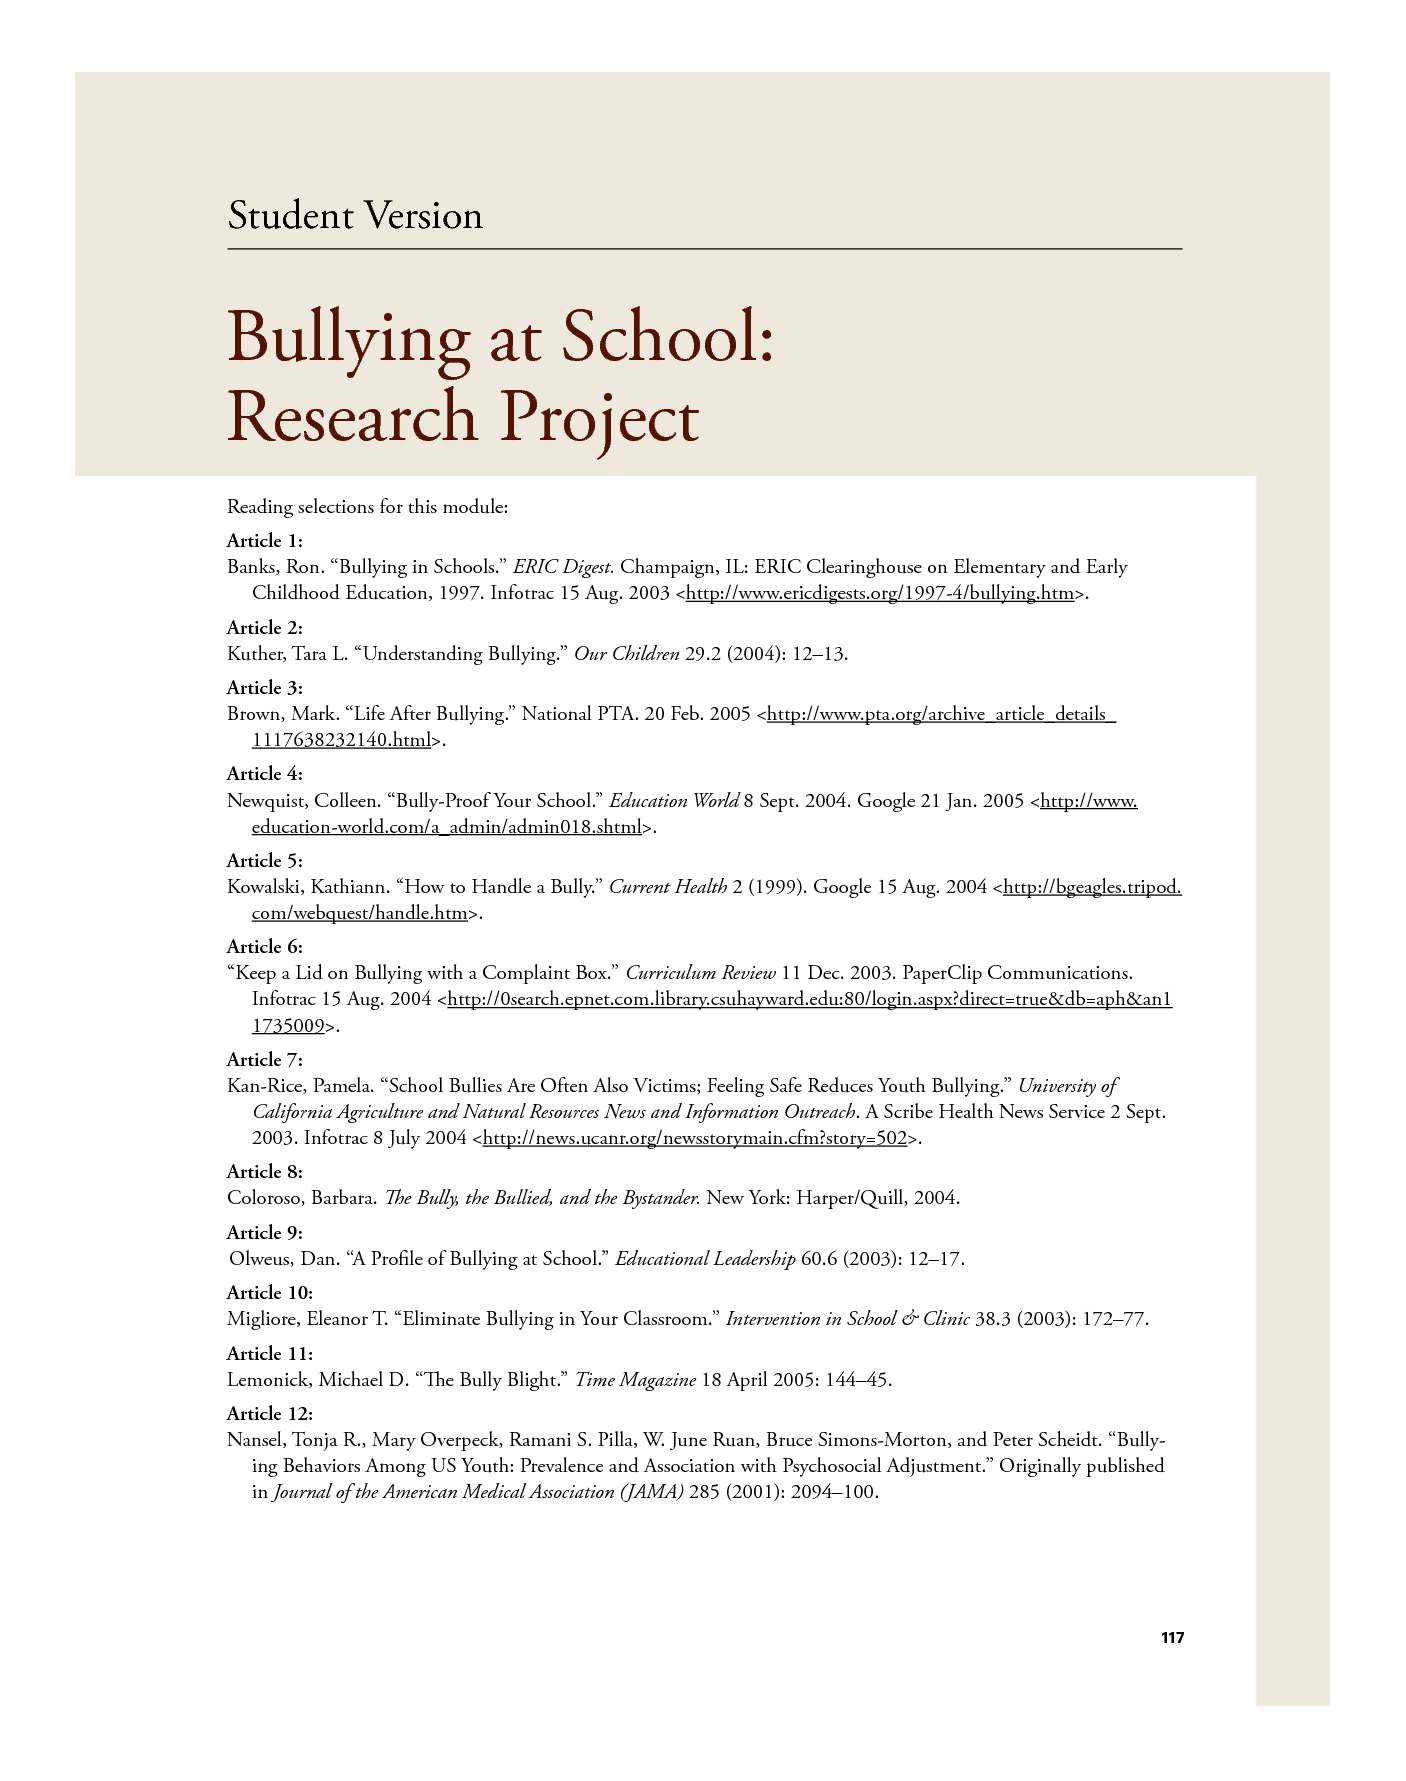 008 Essay On Bullying Essays In School Effects Of The Main Ways To Stop Bvj88 How Avoid At Prevent Spm Deal With High Schools Amazing Cause And Effect Cyberbullying Full